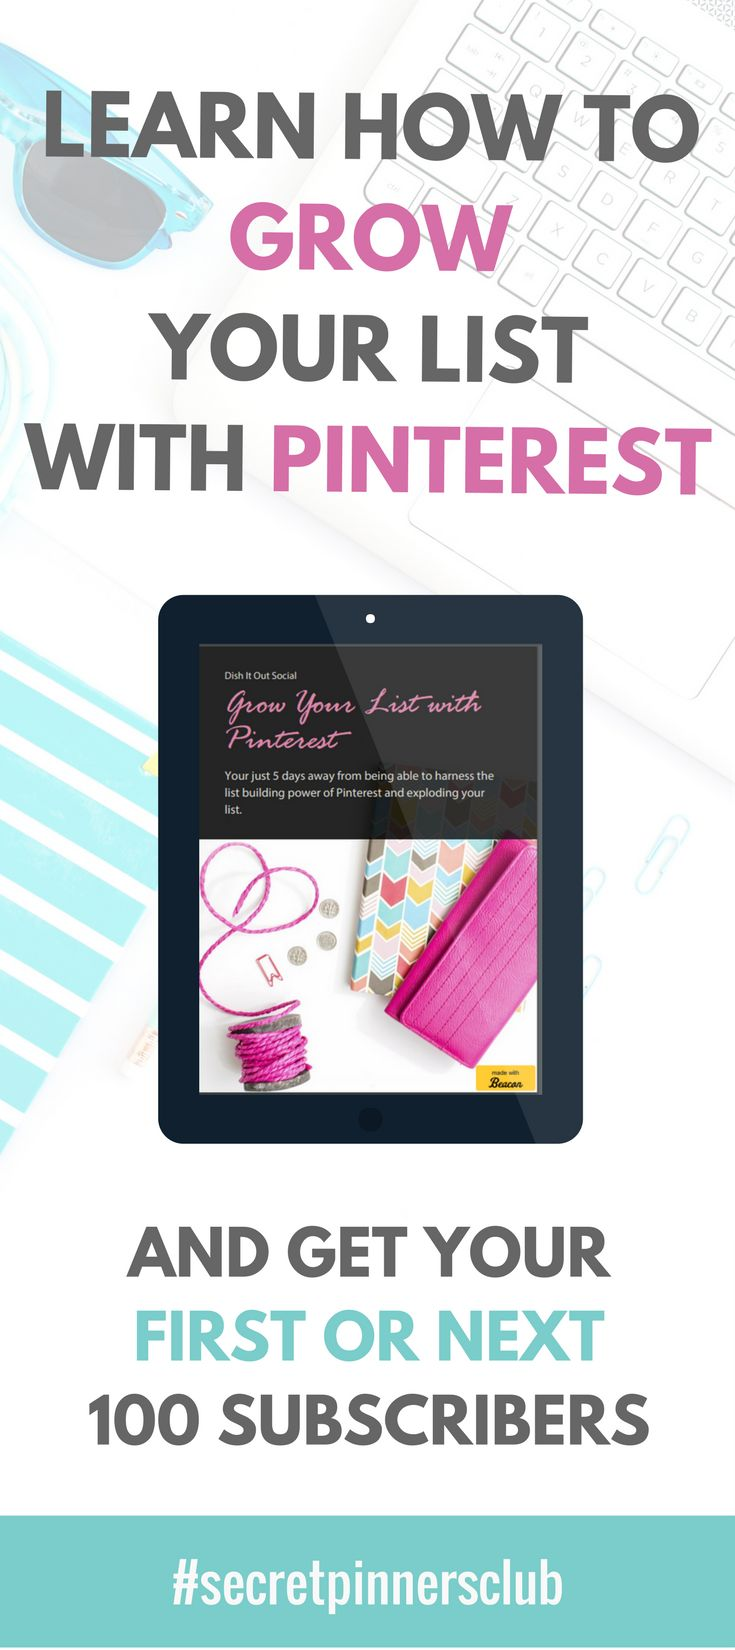 Are you struggling to grow your email list? Grab my new e-book that will show you the steps you need to take in order to start growing your list with Pinterest. email marketing, how to use pinterest, grow your email list, lead magnets, pinterest ebook, grow your list with Pinterest.